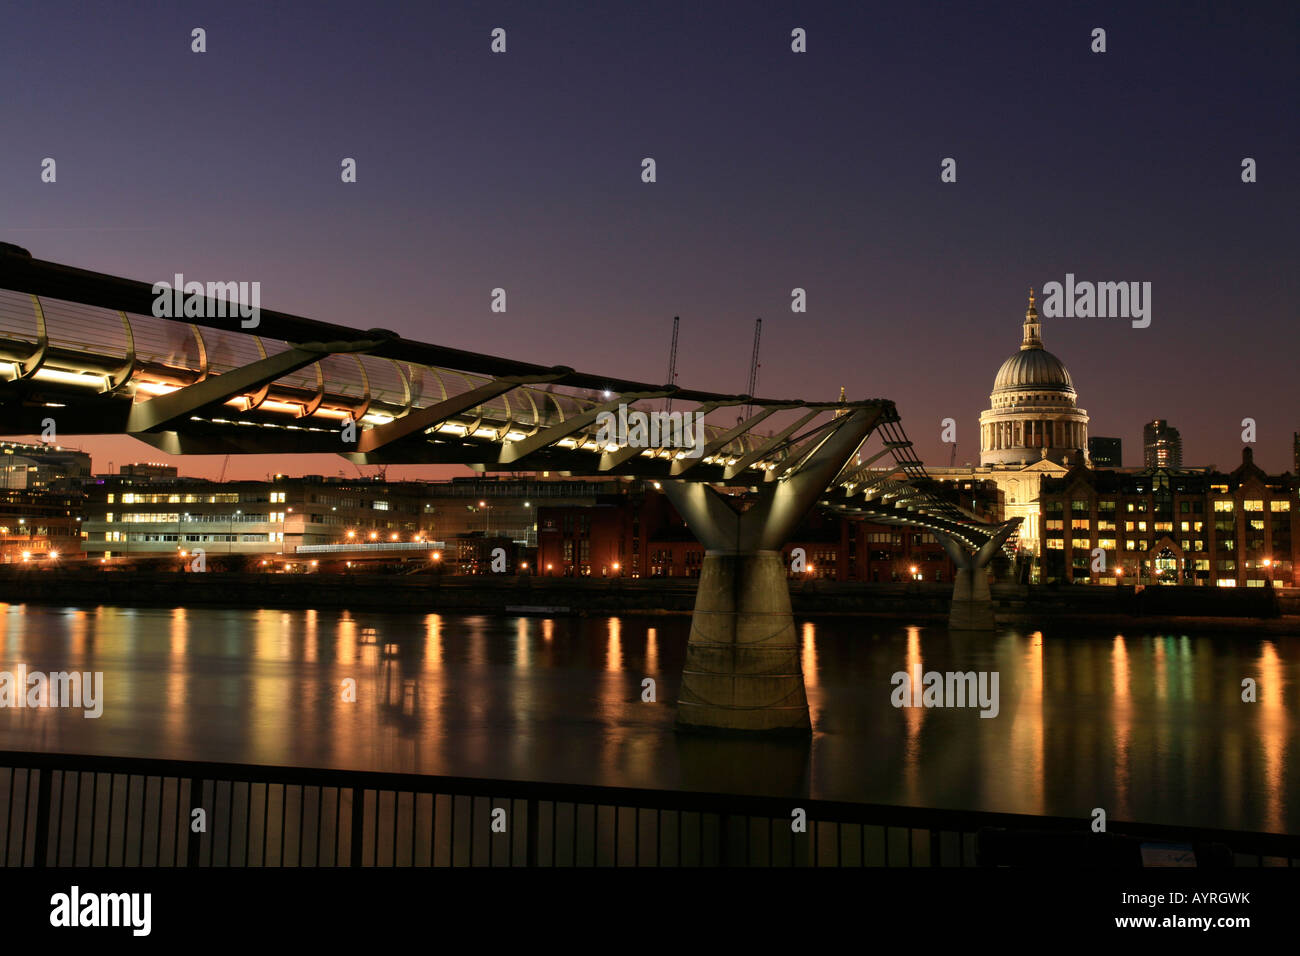 St. Paul's Cathedral and Millennium Bridge at dusk, seen from southern bank of the Thames, London, England, - Stock Image